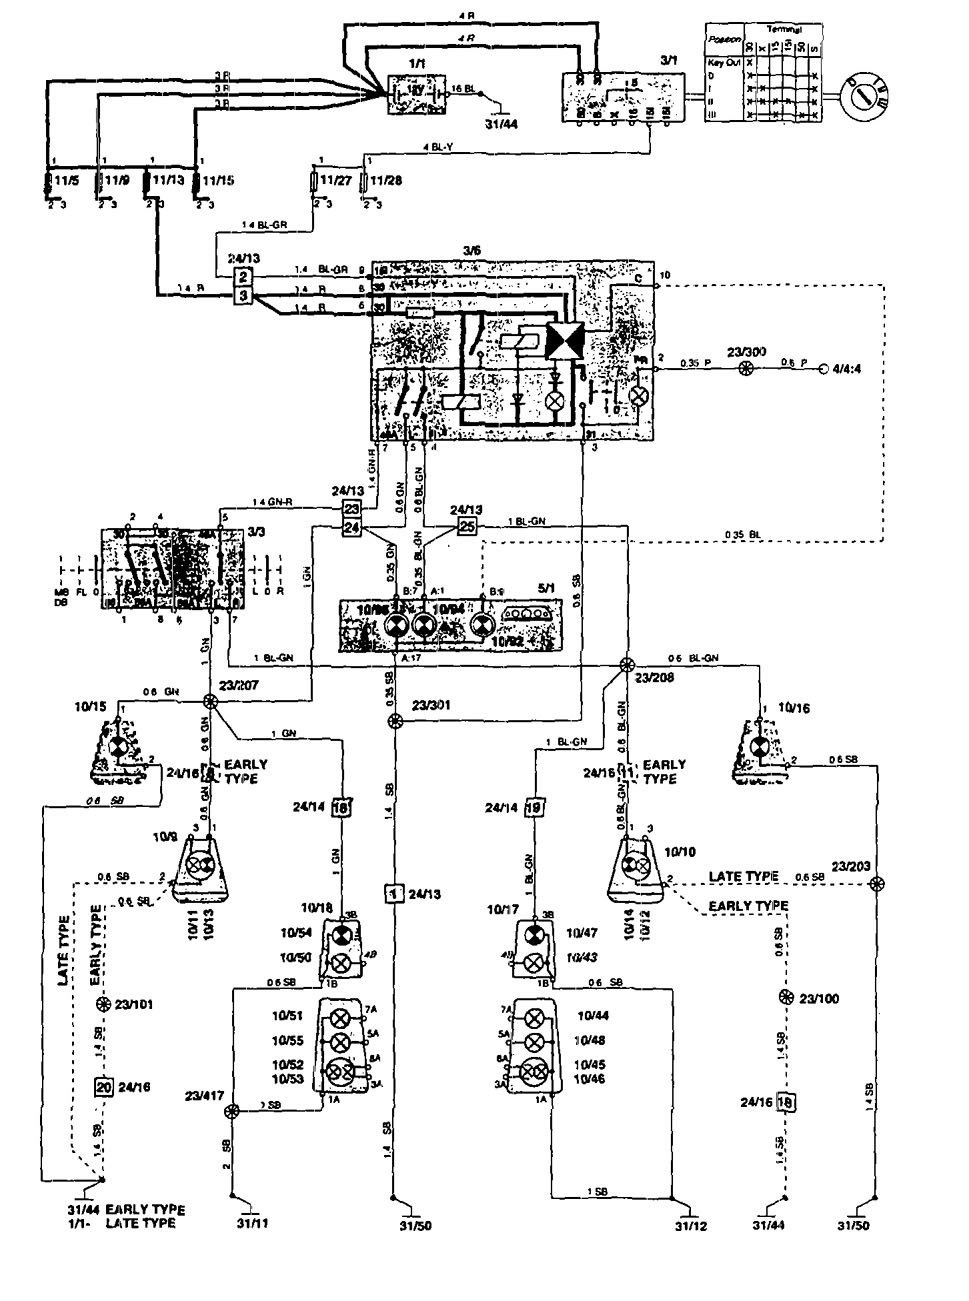 Volvo 850 (1995) - wiring diagrams - turn signal lamp - Carknowledge.info | Bmw R1200c Wiring Schematic |  | Carknowledge.info